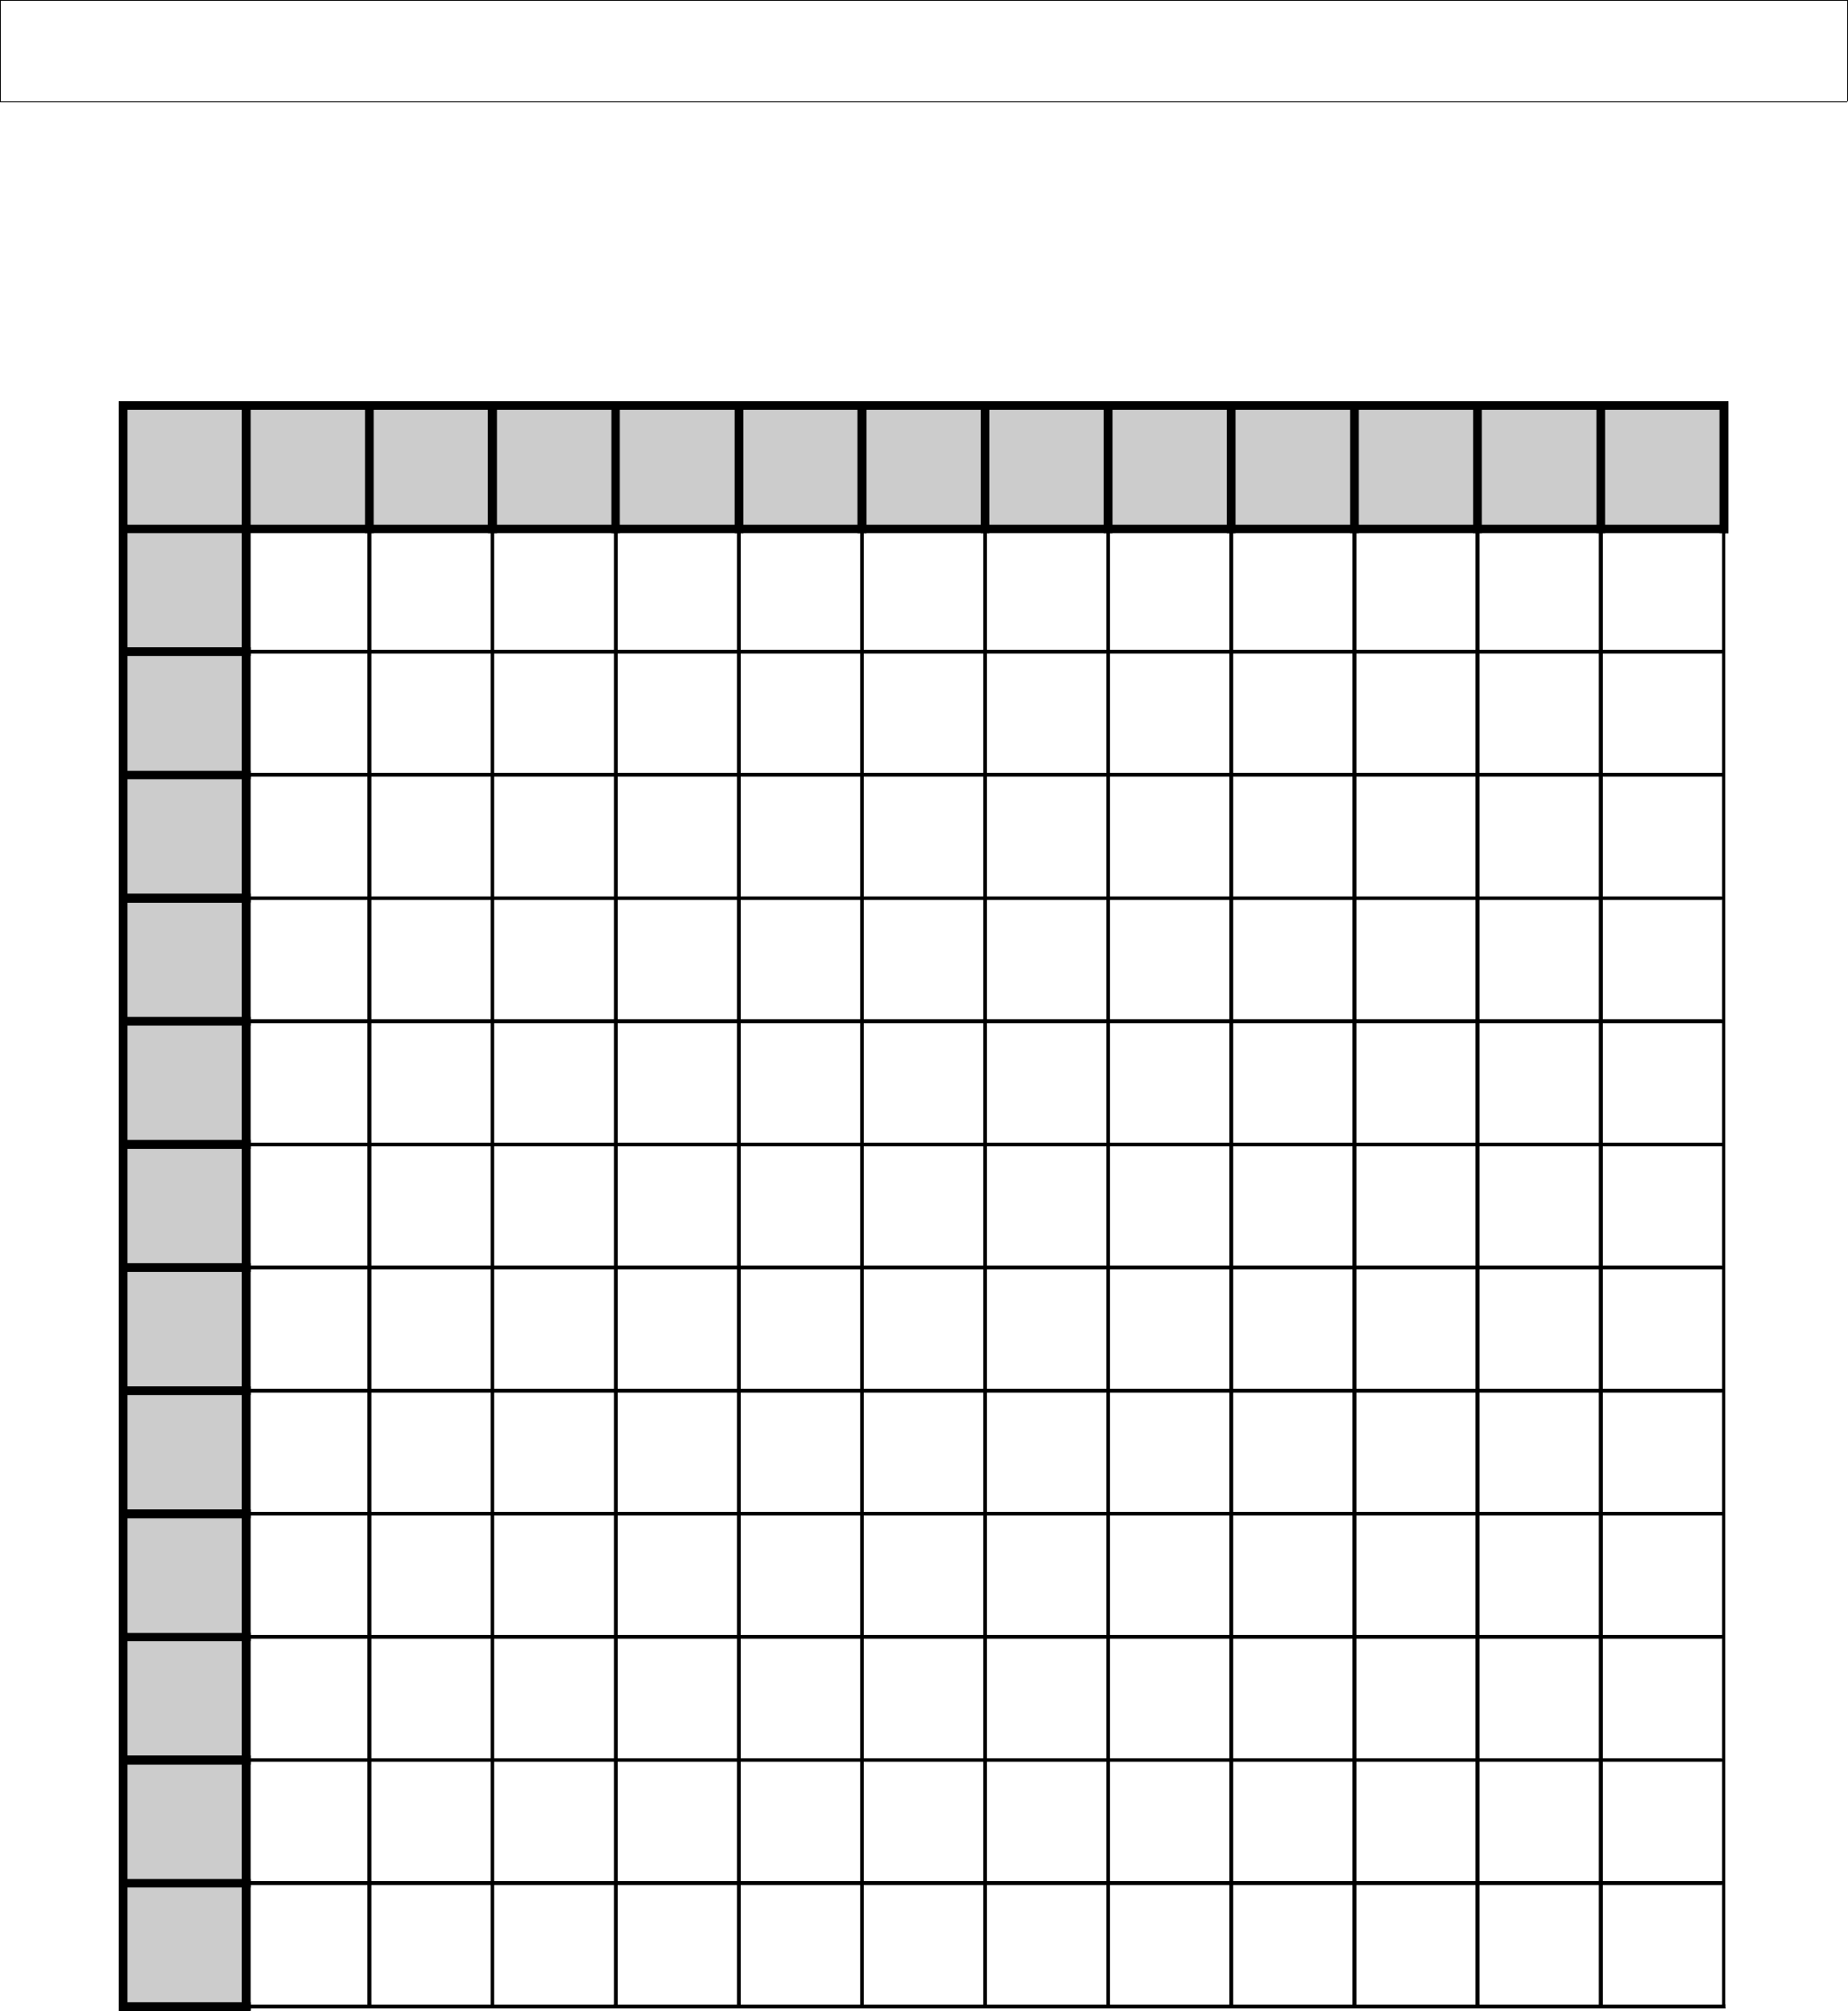 Multiplication Grid Worksheet Blank - Worksheets For Teachers